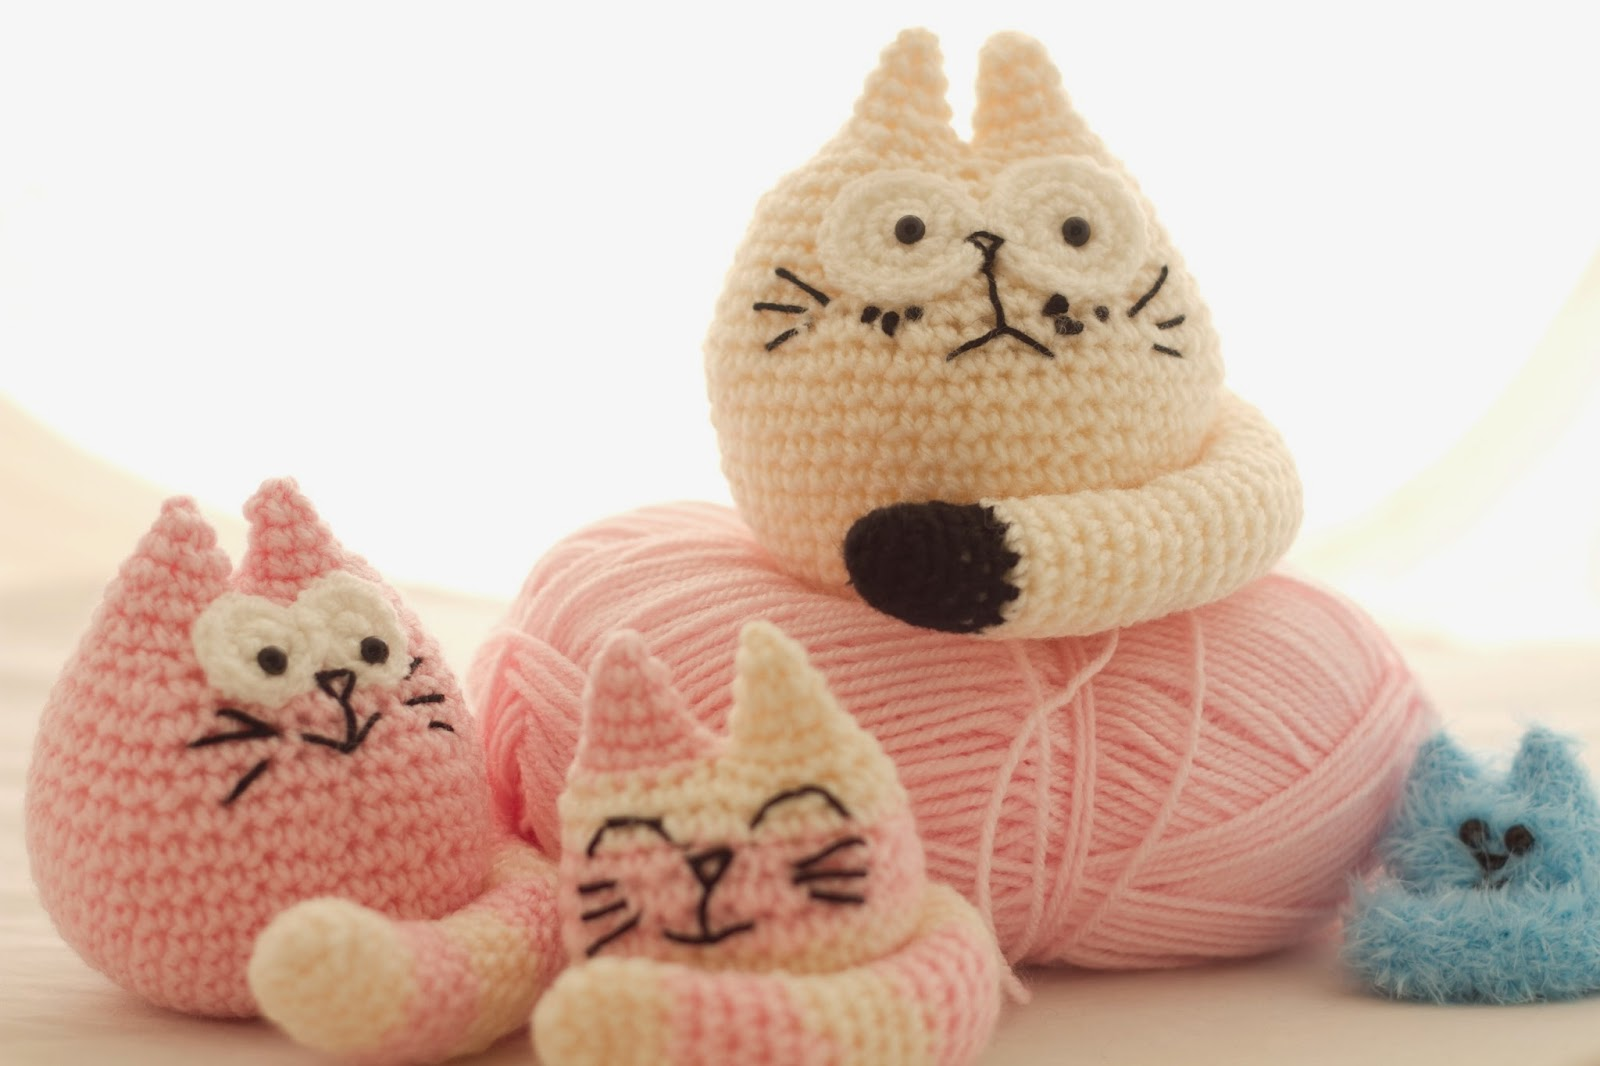 Fugly Crochet: Free Fat Cat Crochet Pattern!!